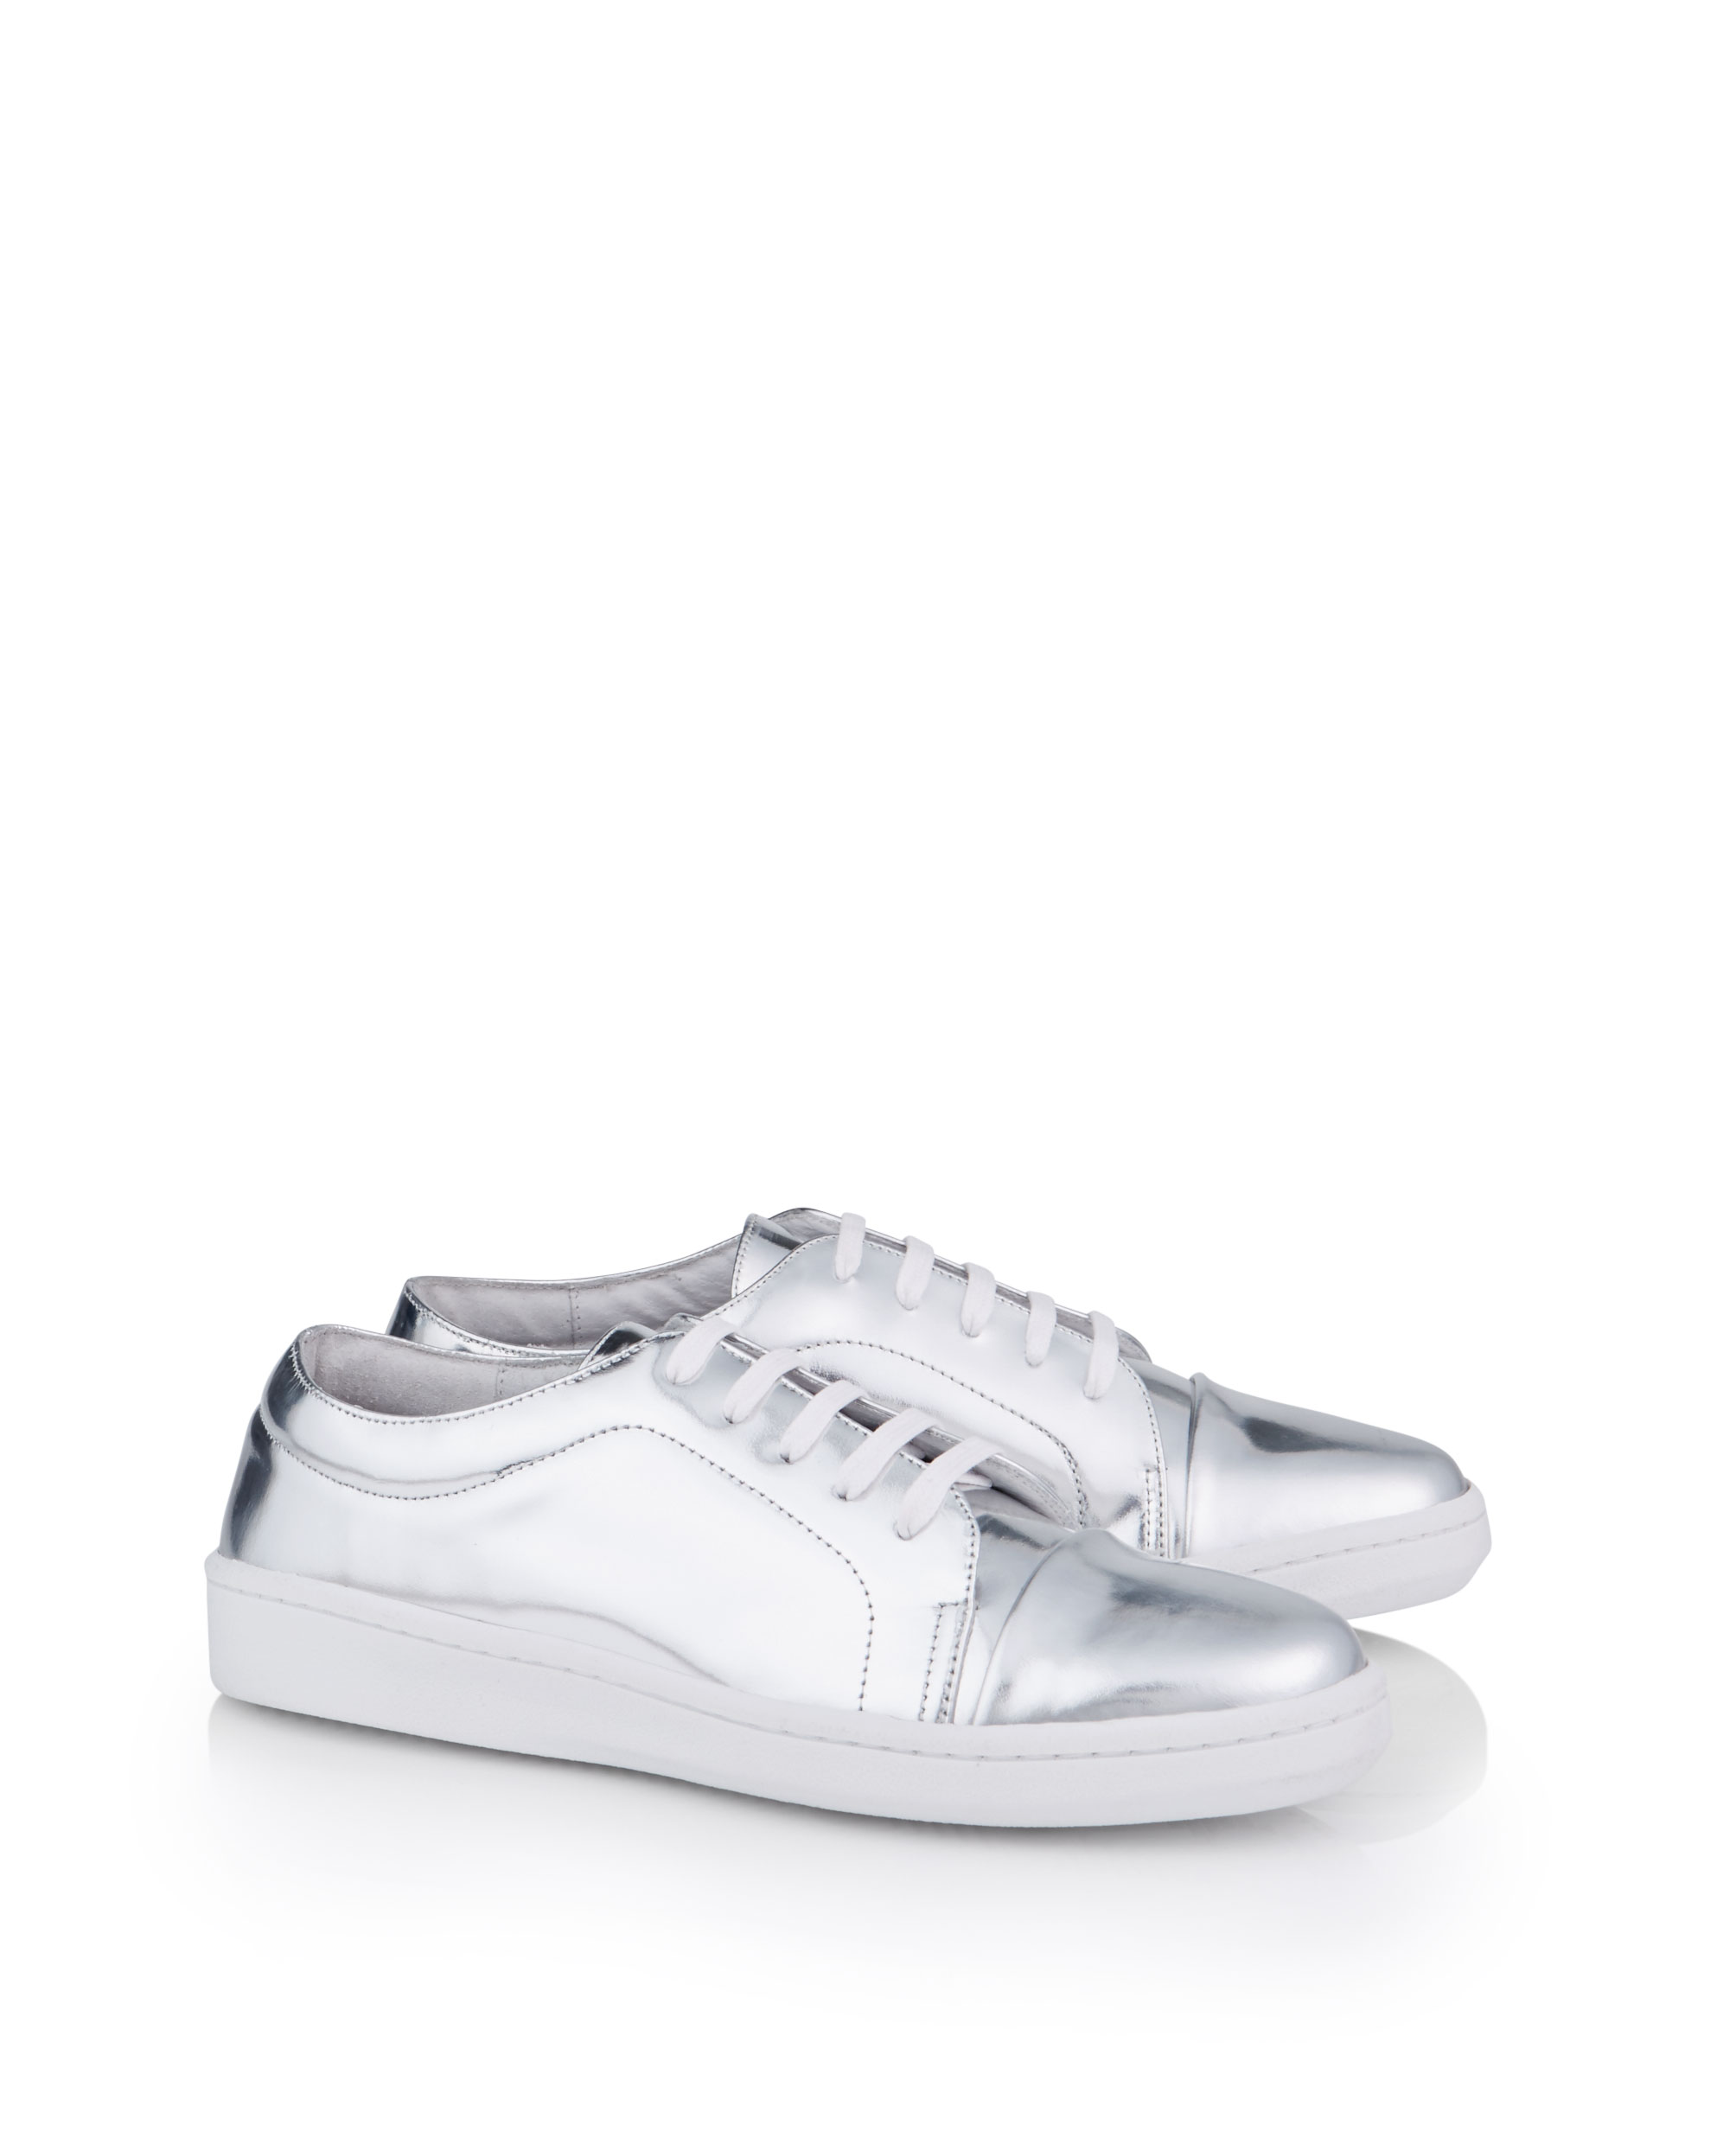 Miista Adalynn Lace Up Trainer